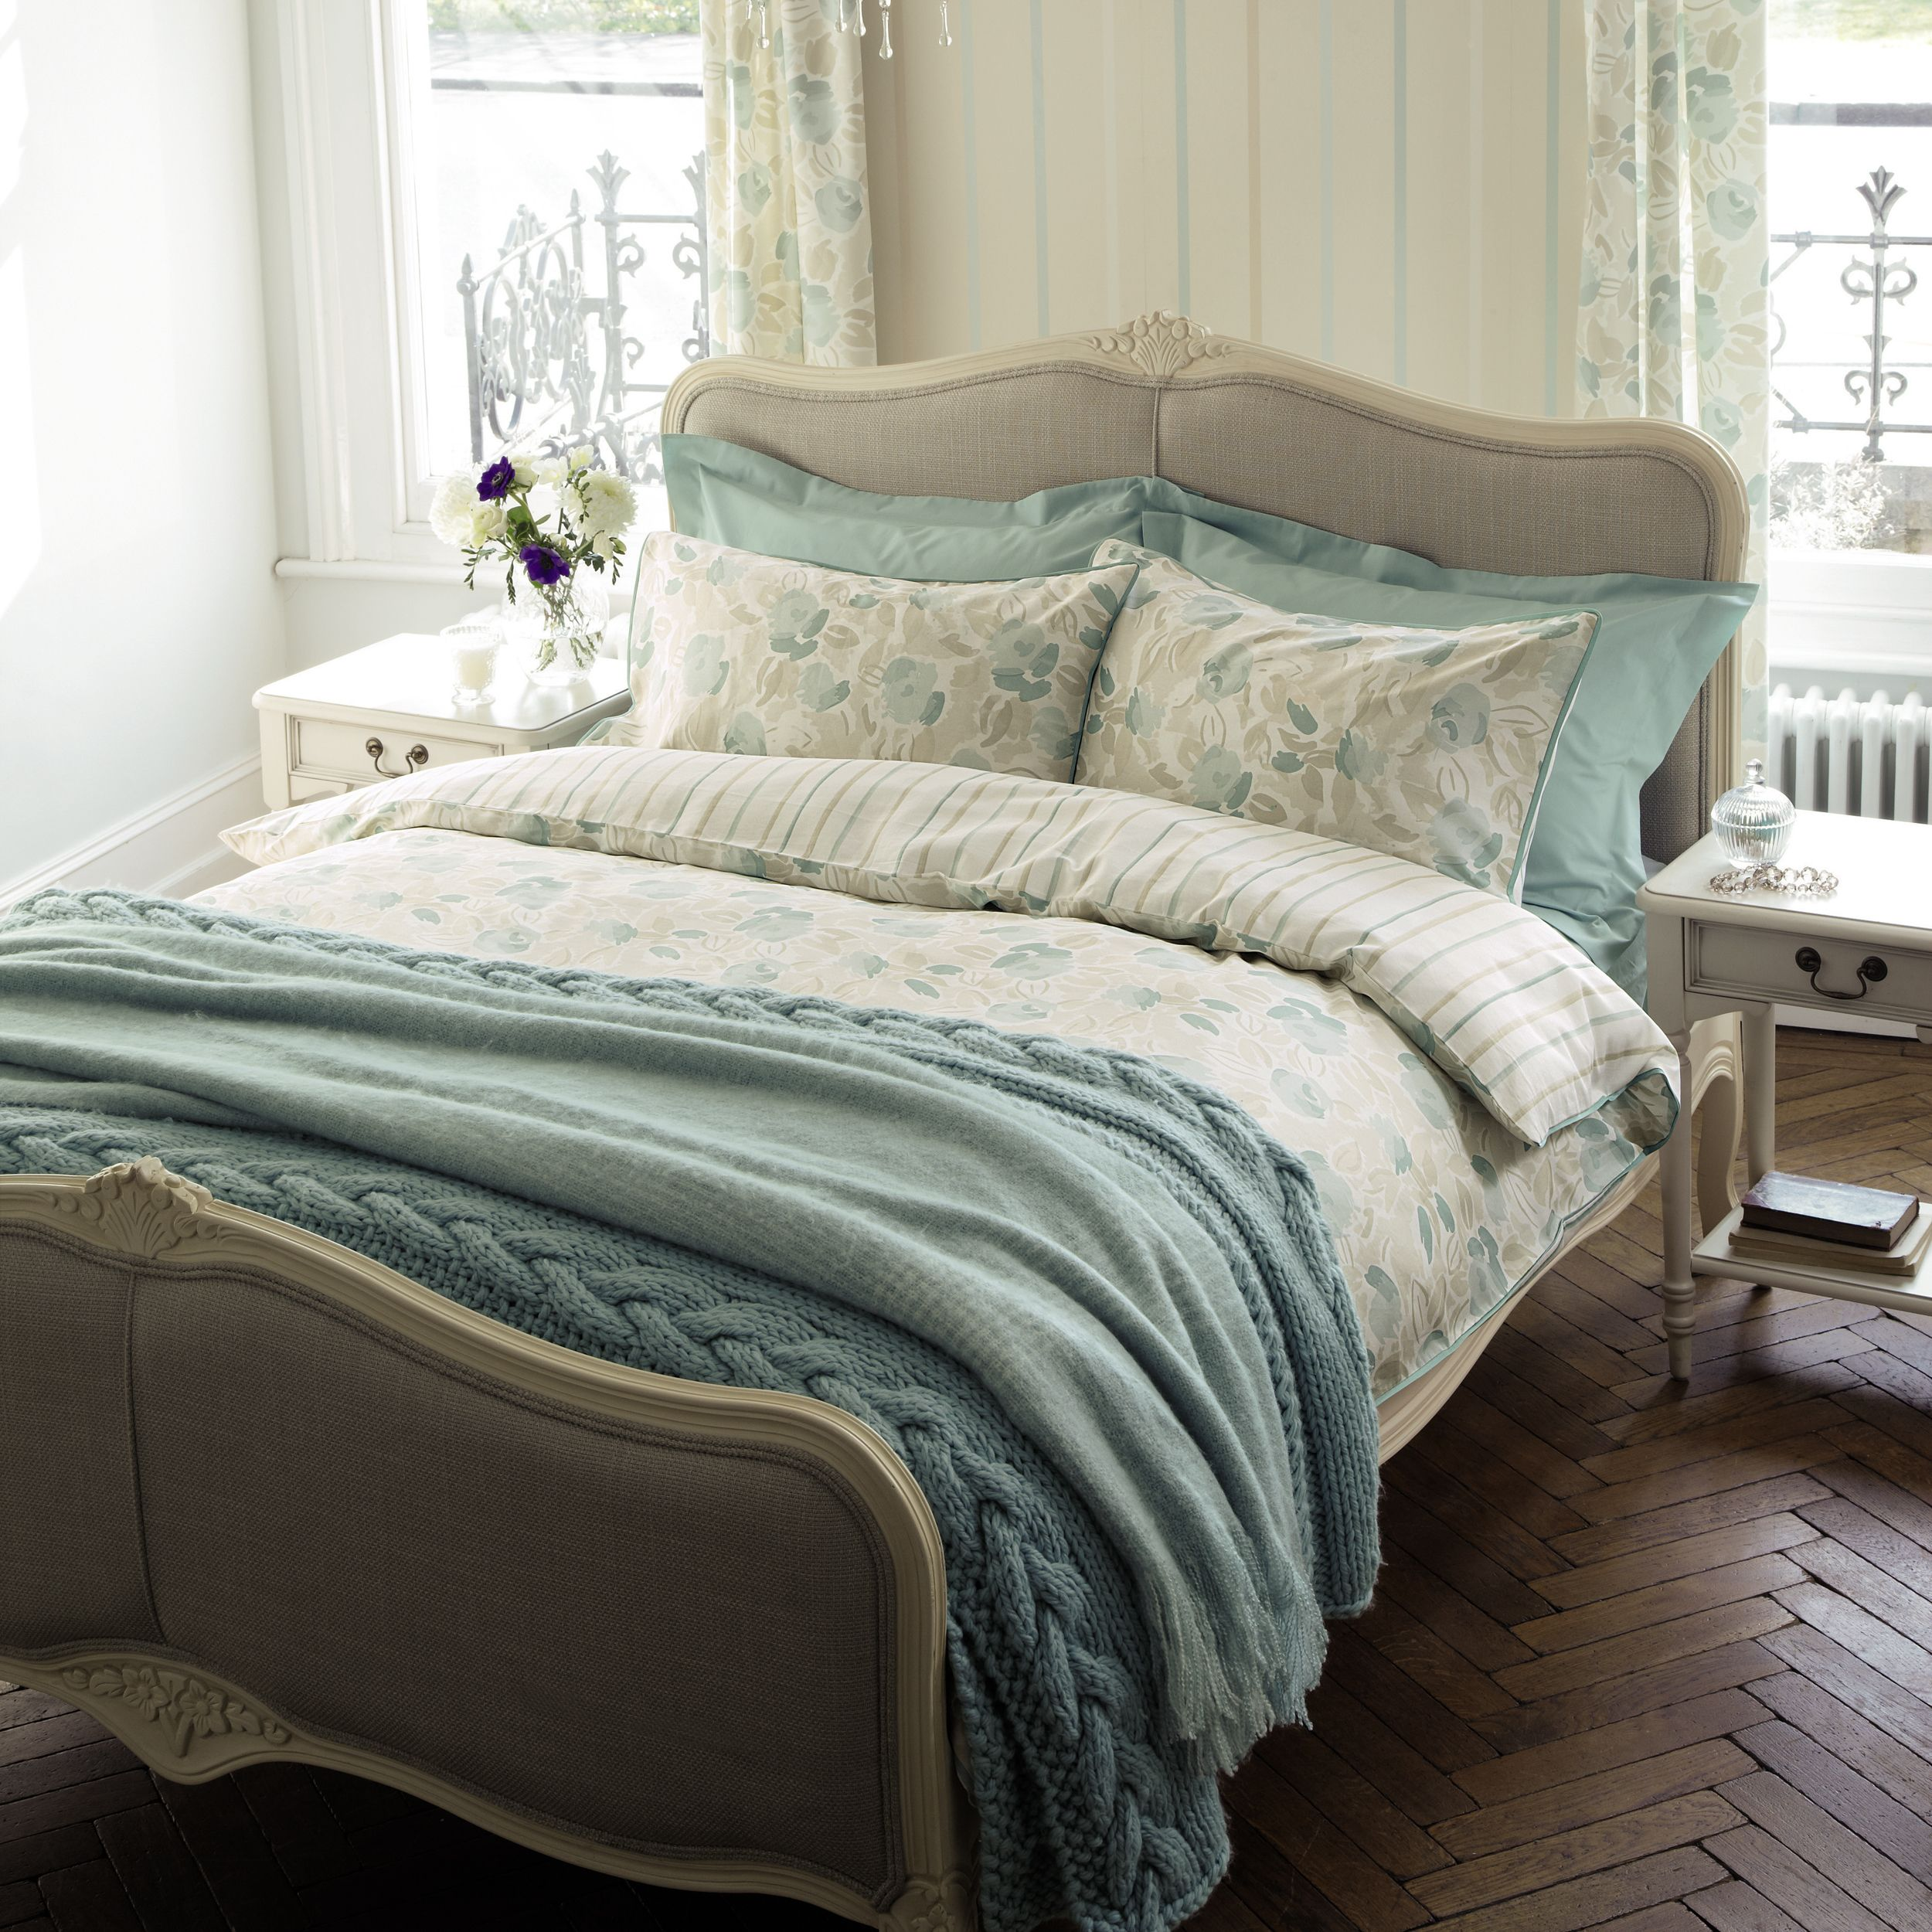 Duck Egg Blue Bedroom Pictures Bedroom Design Concept Vintage Bedroom Lighting Master Bedroom Design Nz: By Laura Ashley Emma Duck Egg Cotton Bedlinen